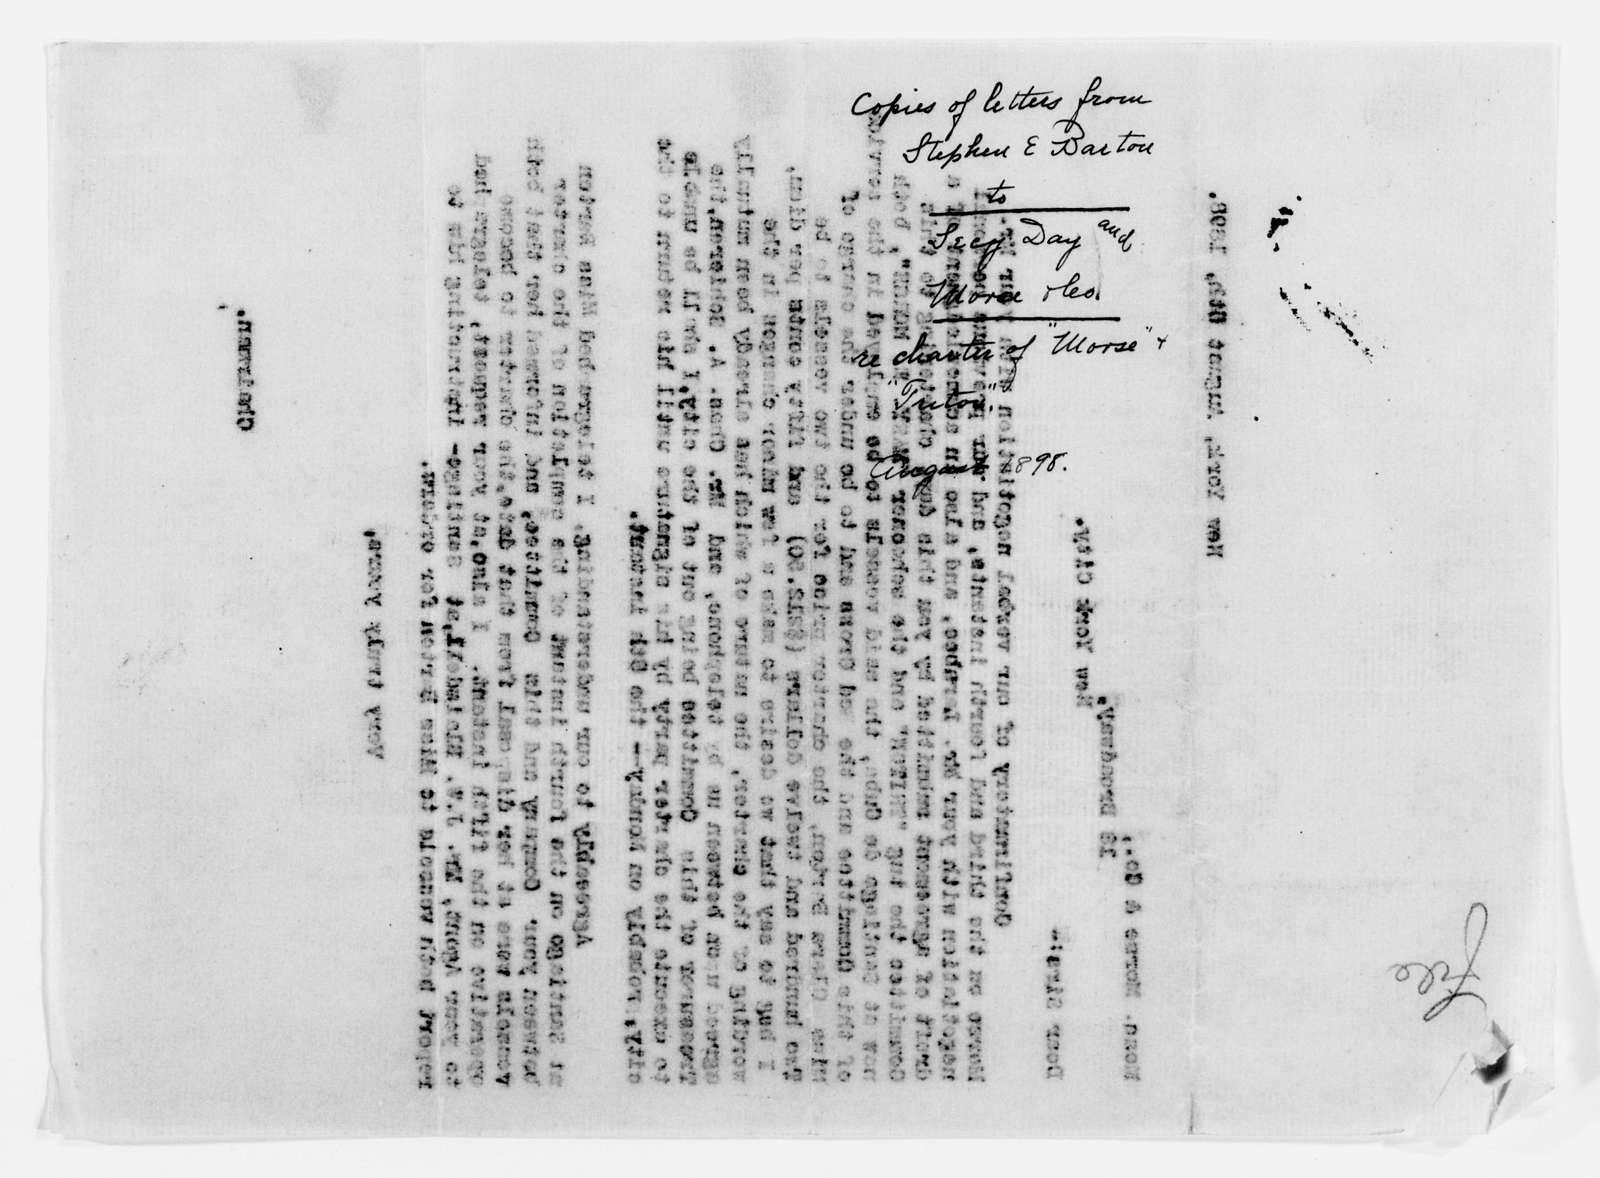 Clara Barton Papers: Red Cross File, 1863-1957; American National Red Cross, 1878-1957; Relief operations; Spanish-American War; Correspondence; General; 1898, July 19-Sept. 11